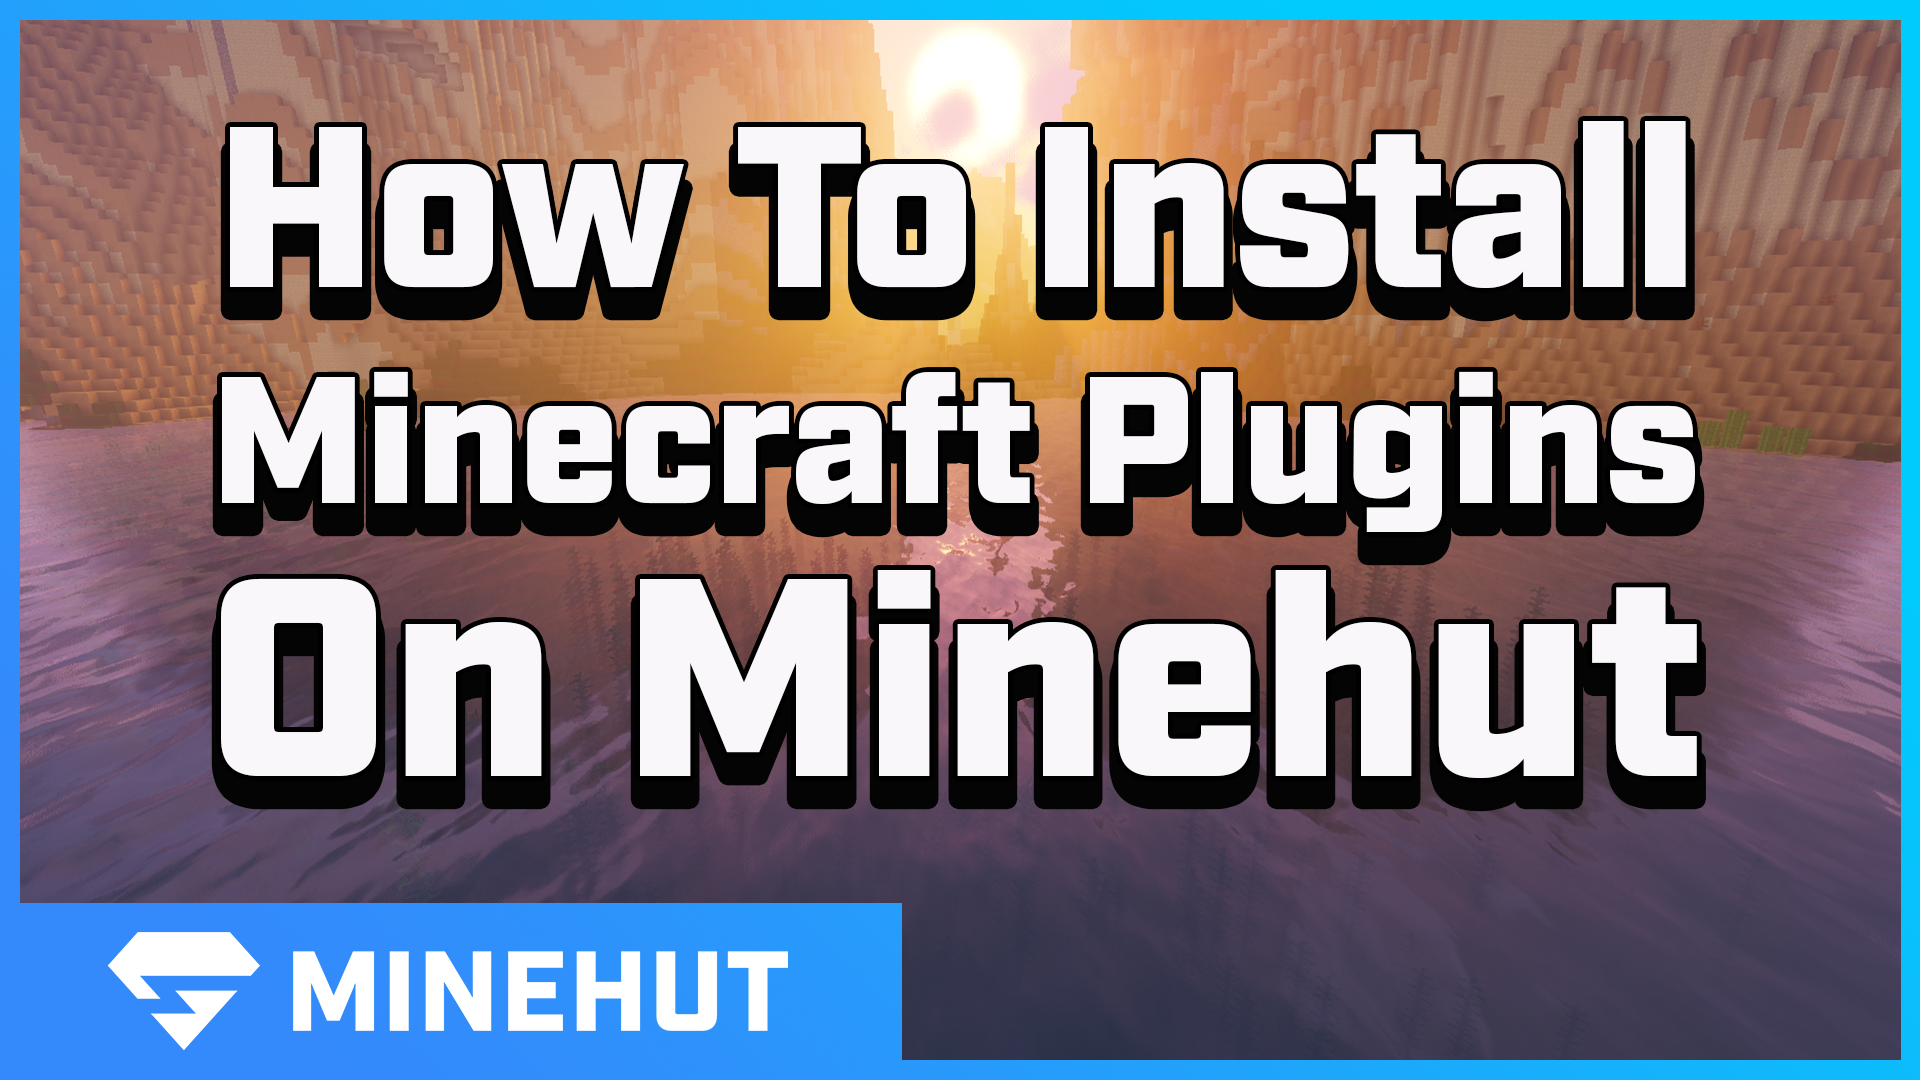 Minehut Free Minecraft Server Hosting